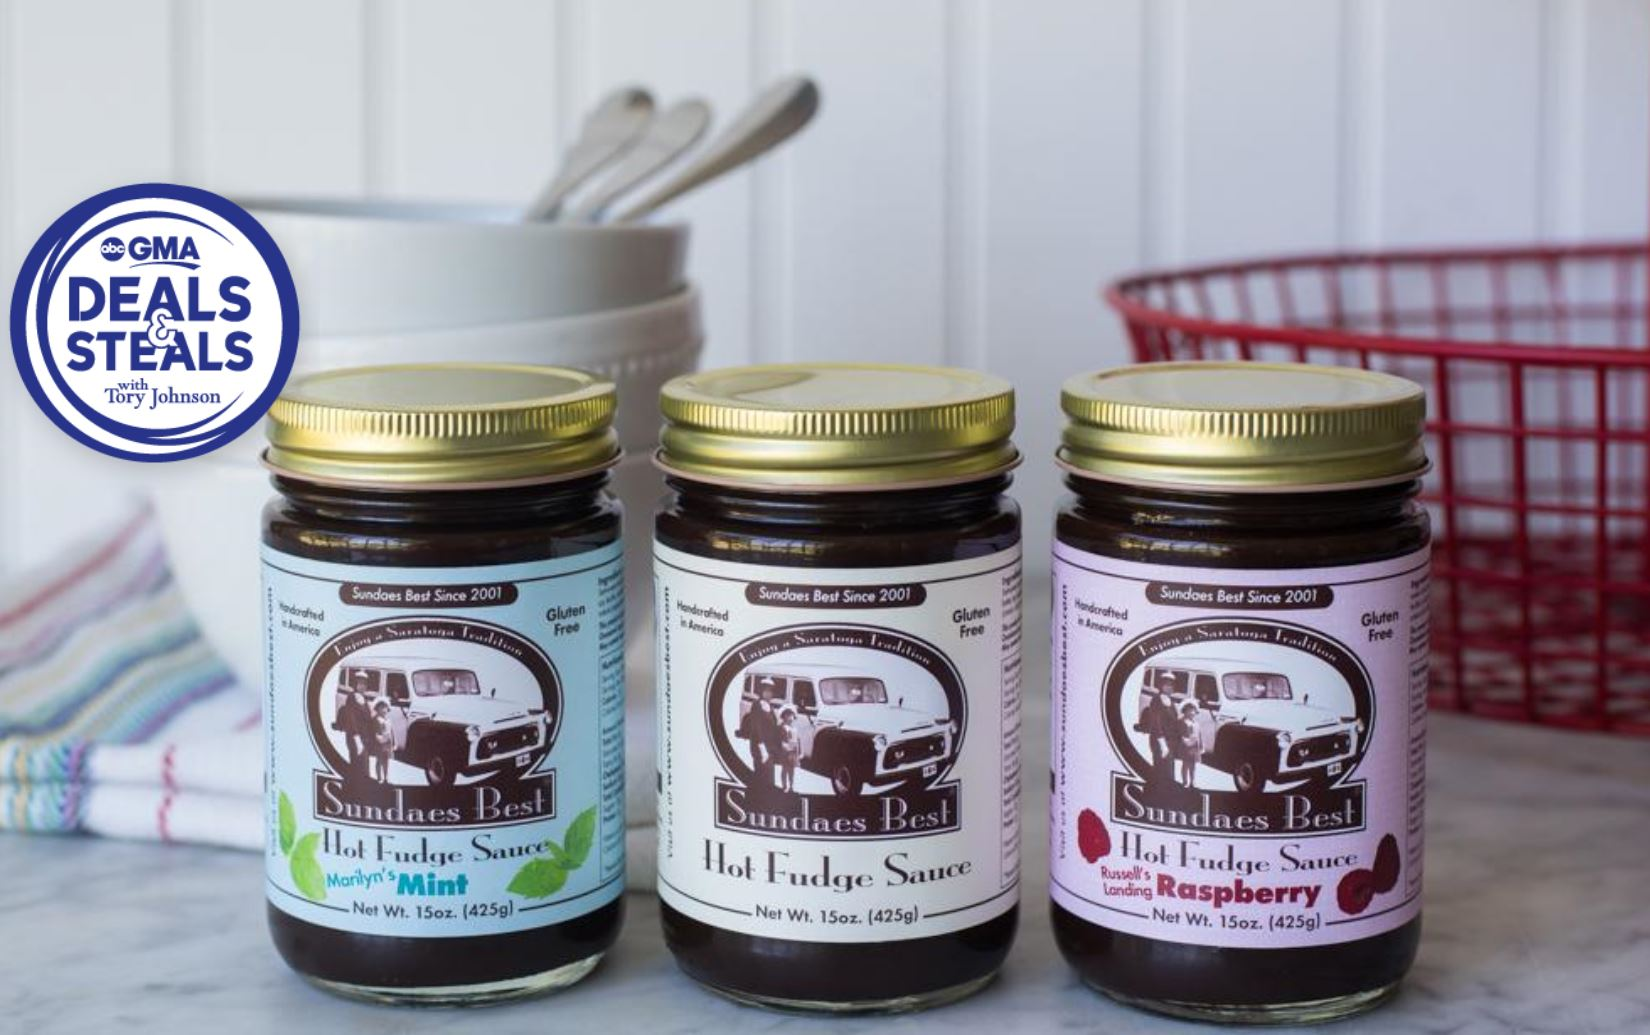 Trifecta Sundae Pack - Mint and Original and Raspberry Hot Fudge Sauce